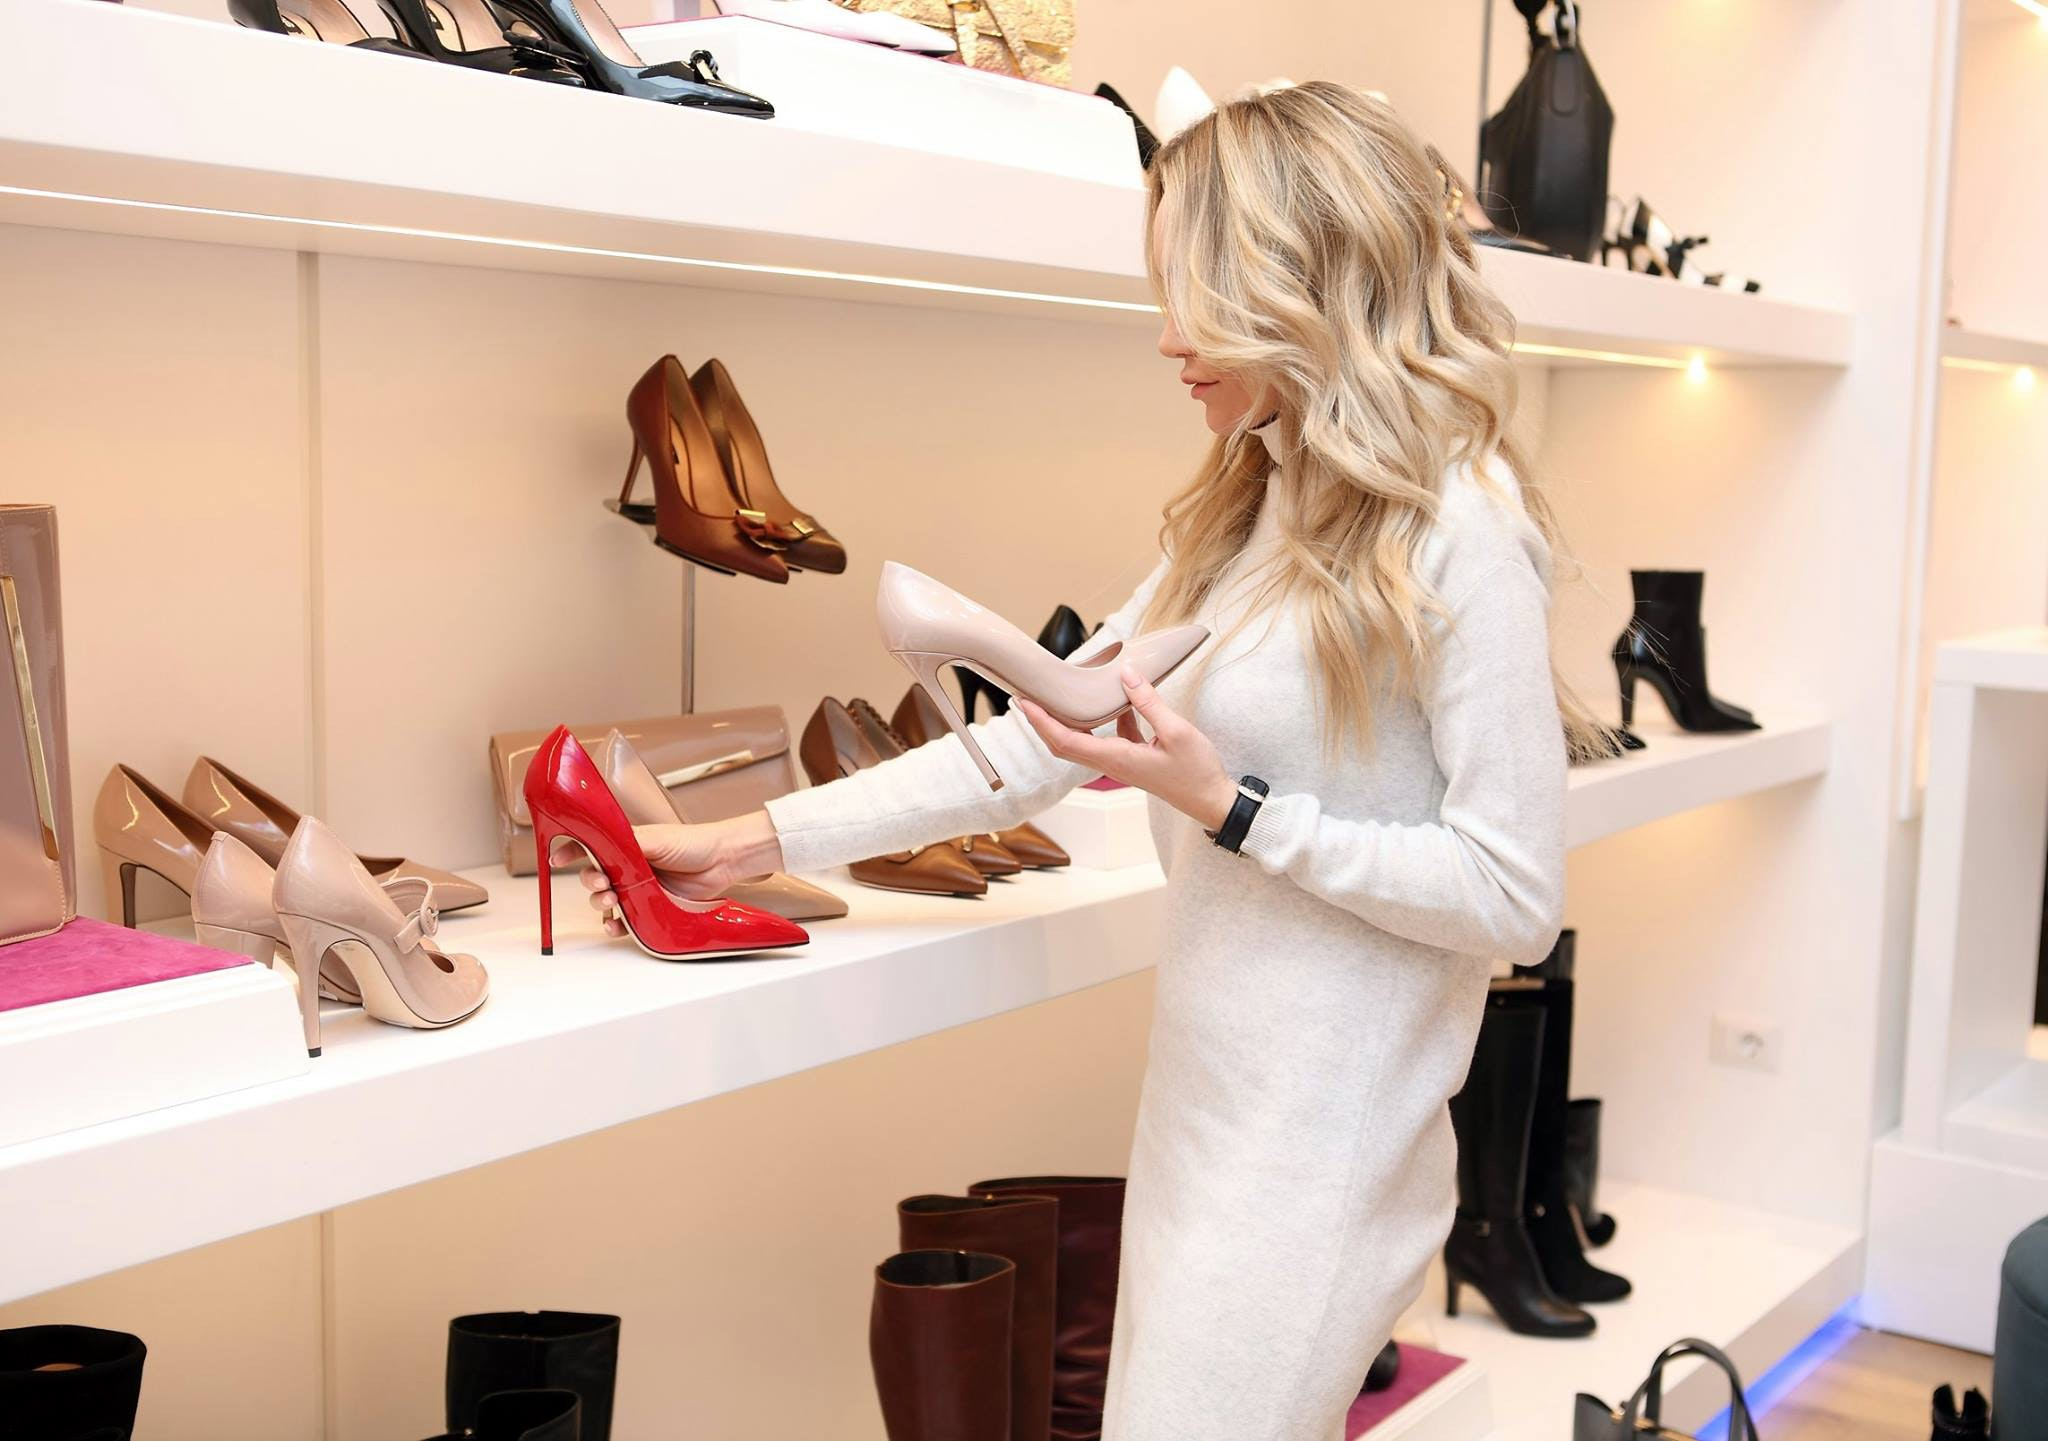 Woman At Shoe Store, Room, Woman, Wear, Stock, HQ Photo